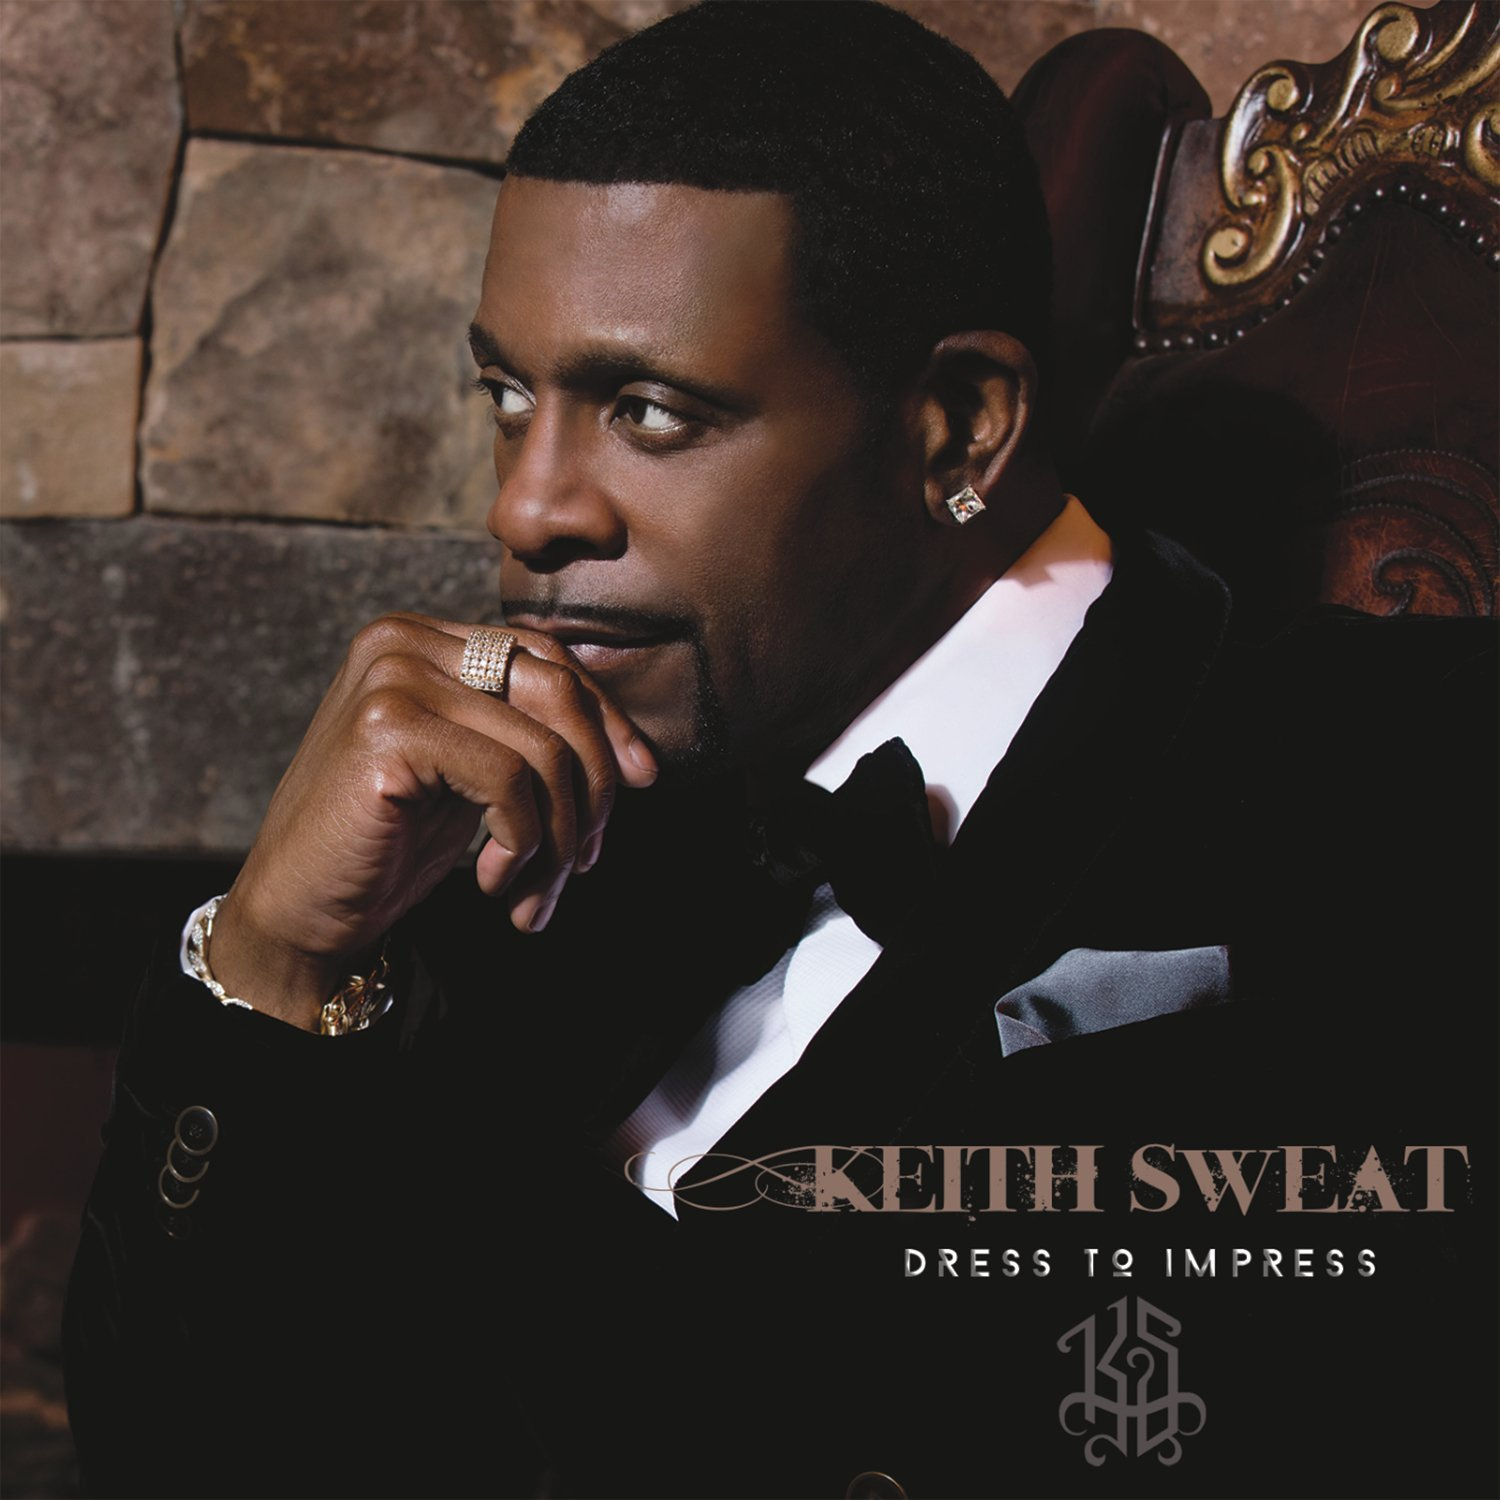 Keith Sweat Dress to Impress Album Cover